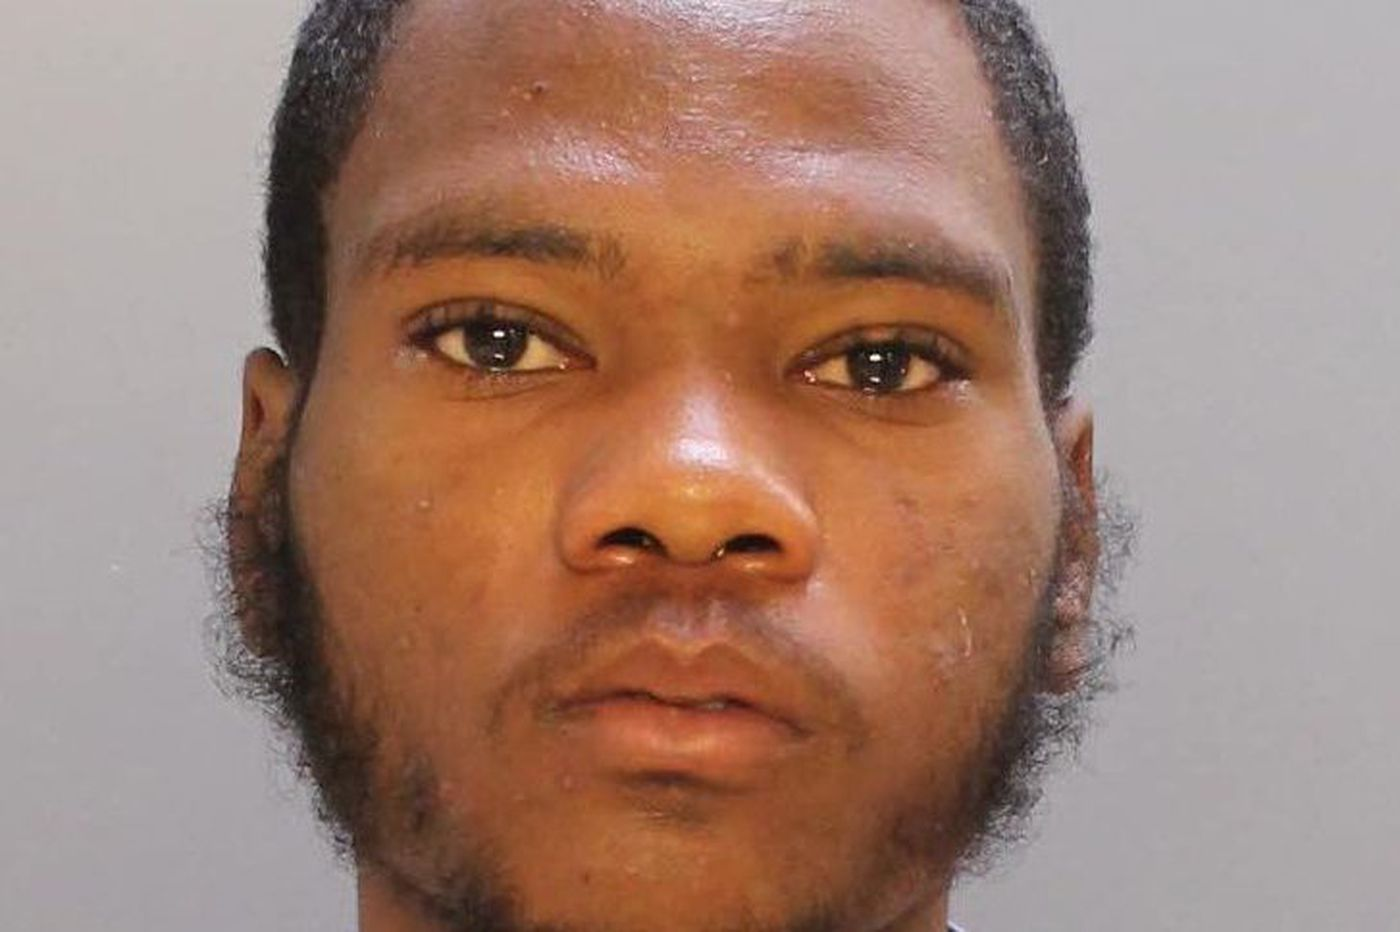 Accused Spring Garden killer was on probation after robbery